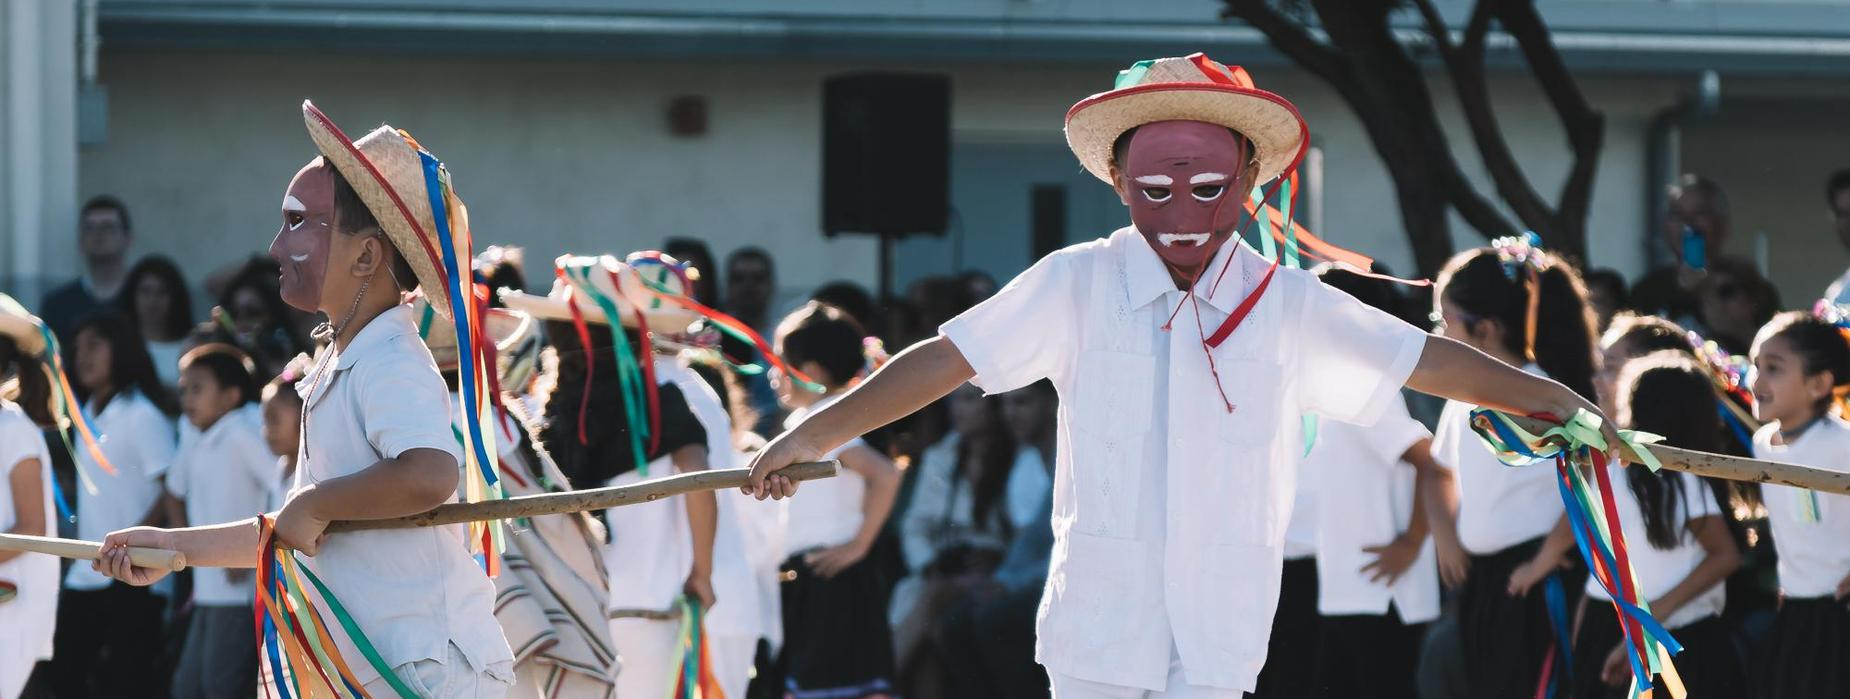 Fremont School Celebrates Mexican Independence Day